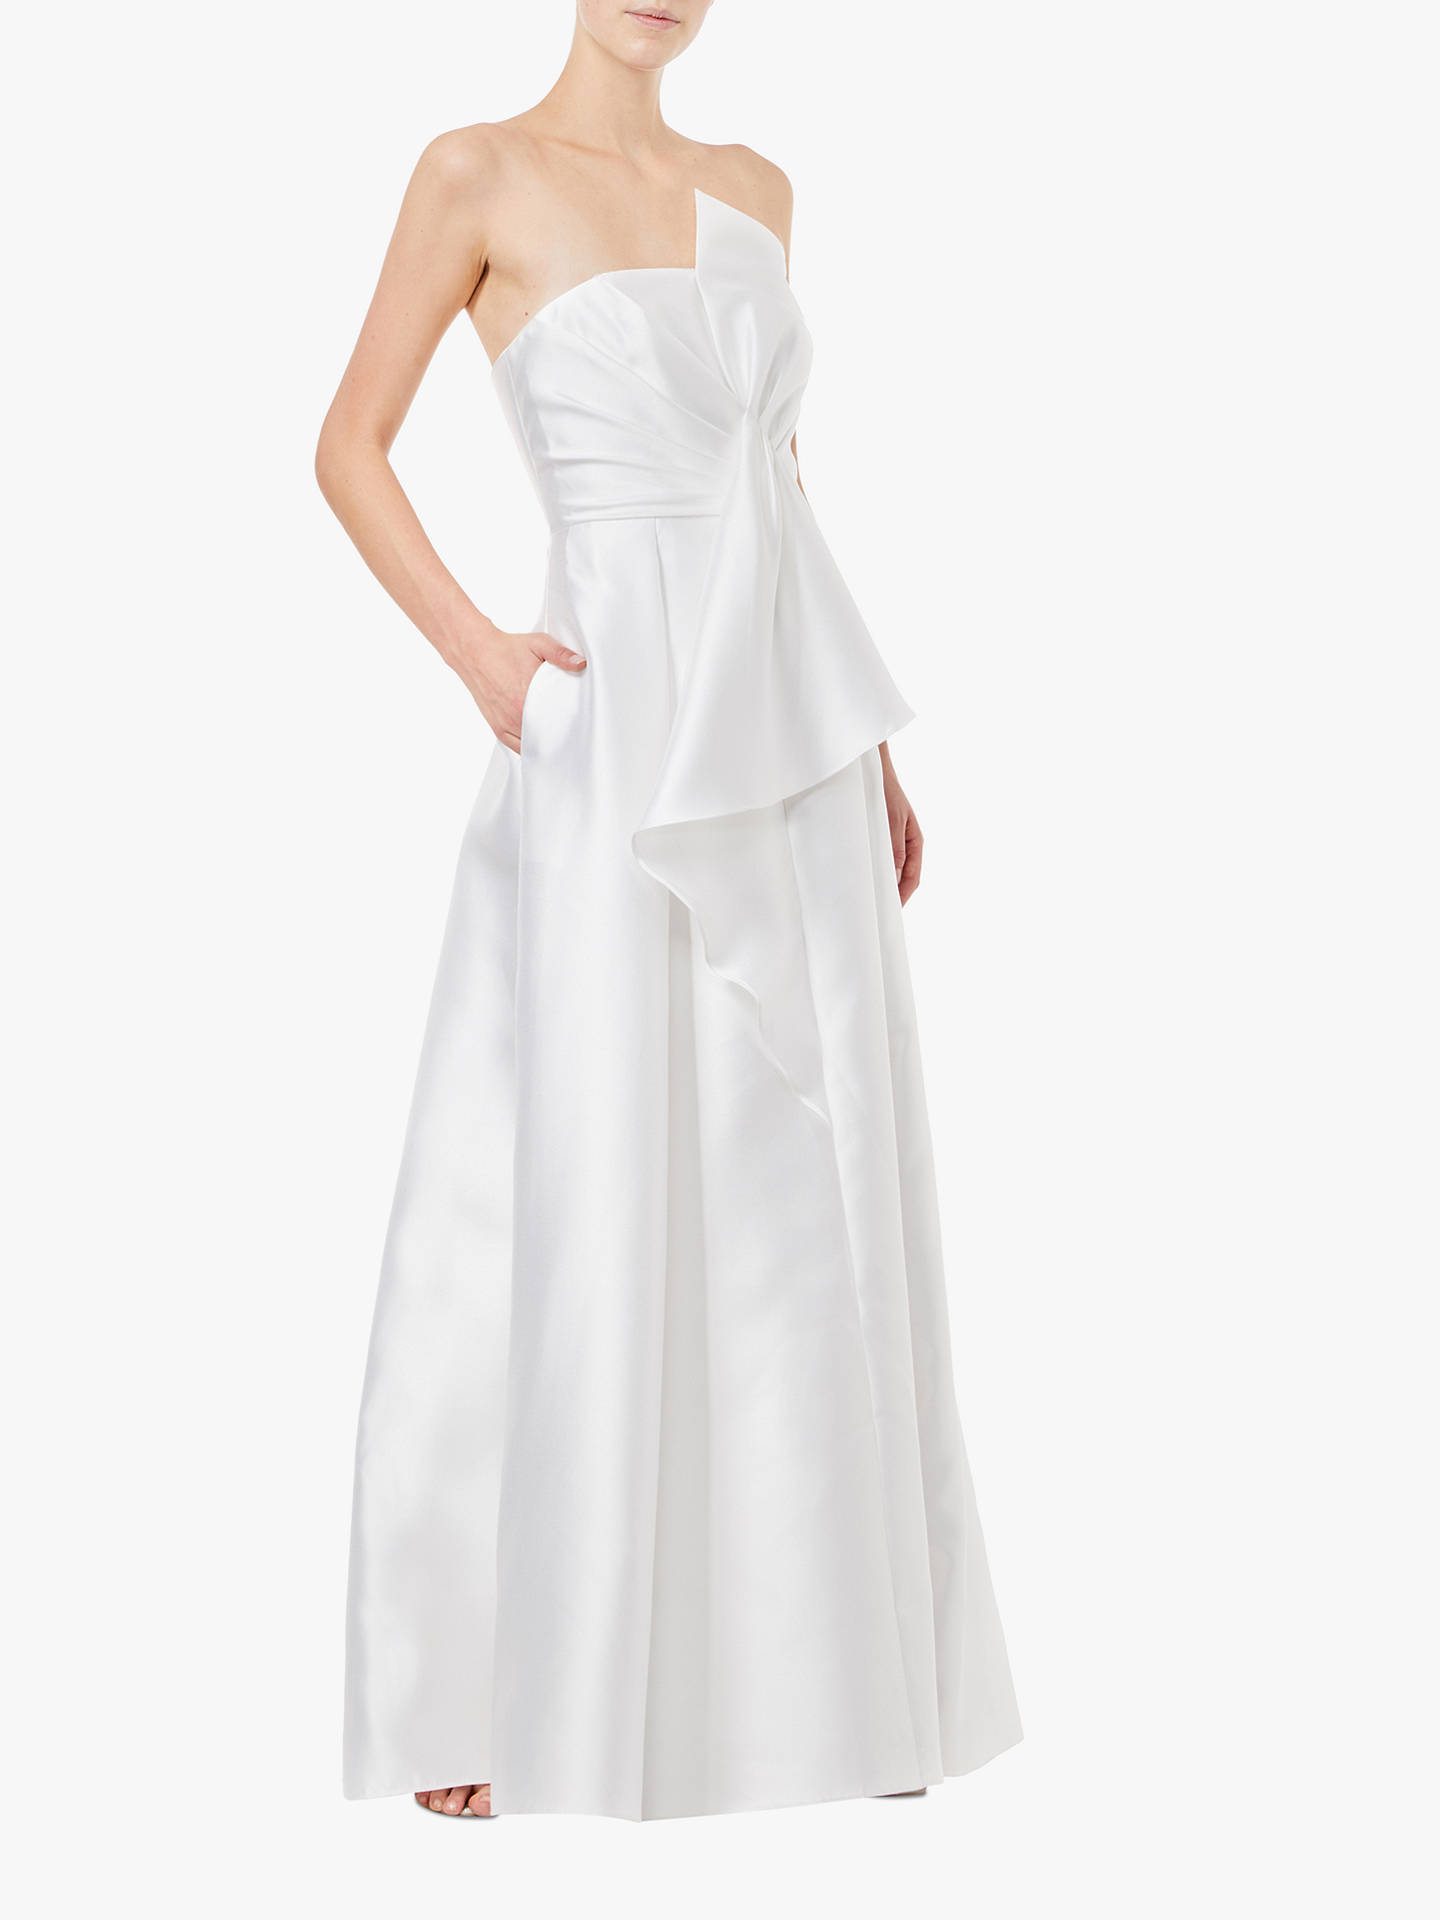 BuyAdrianna Papell Mikado Strapless Long Dress, Ivory, 8 Online at johnlewis.com